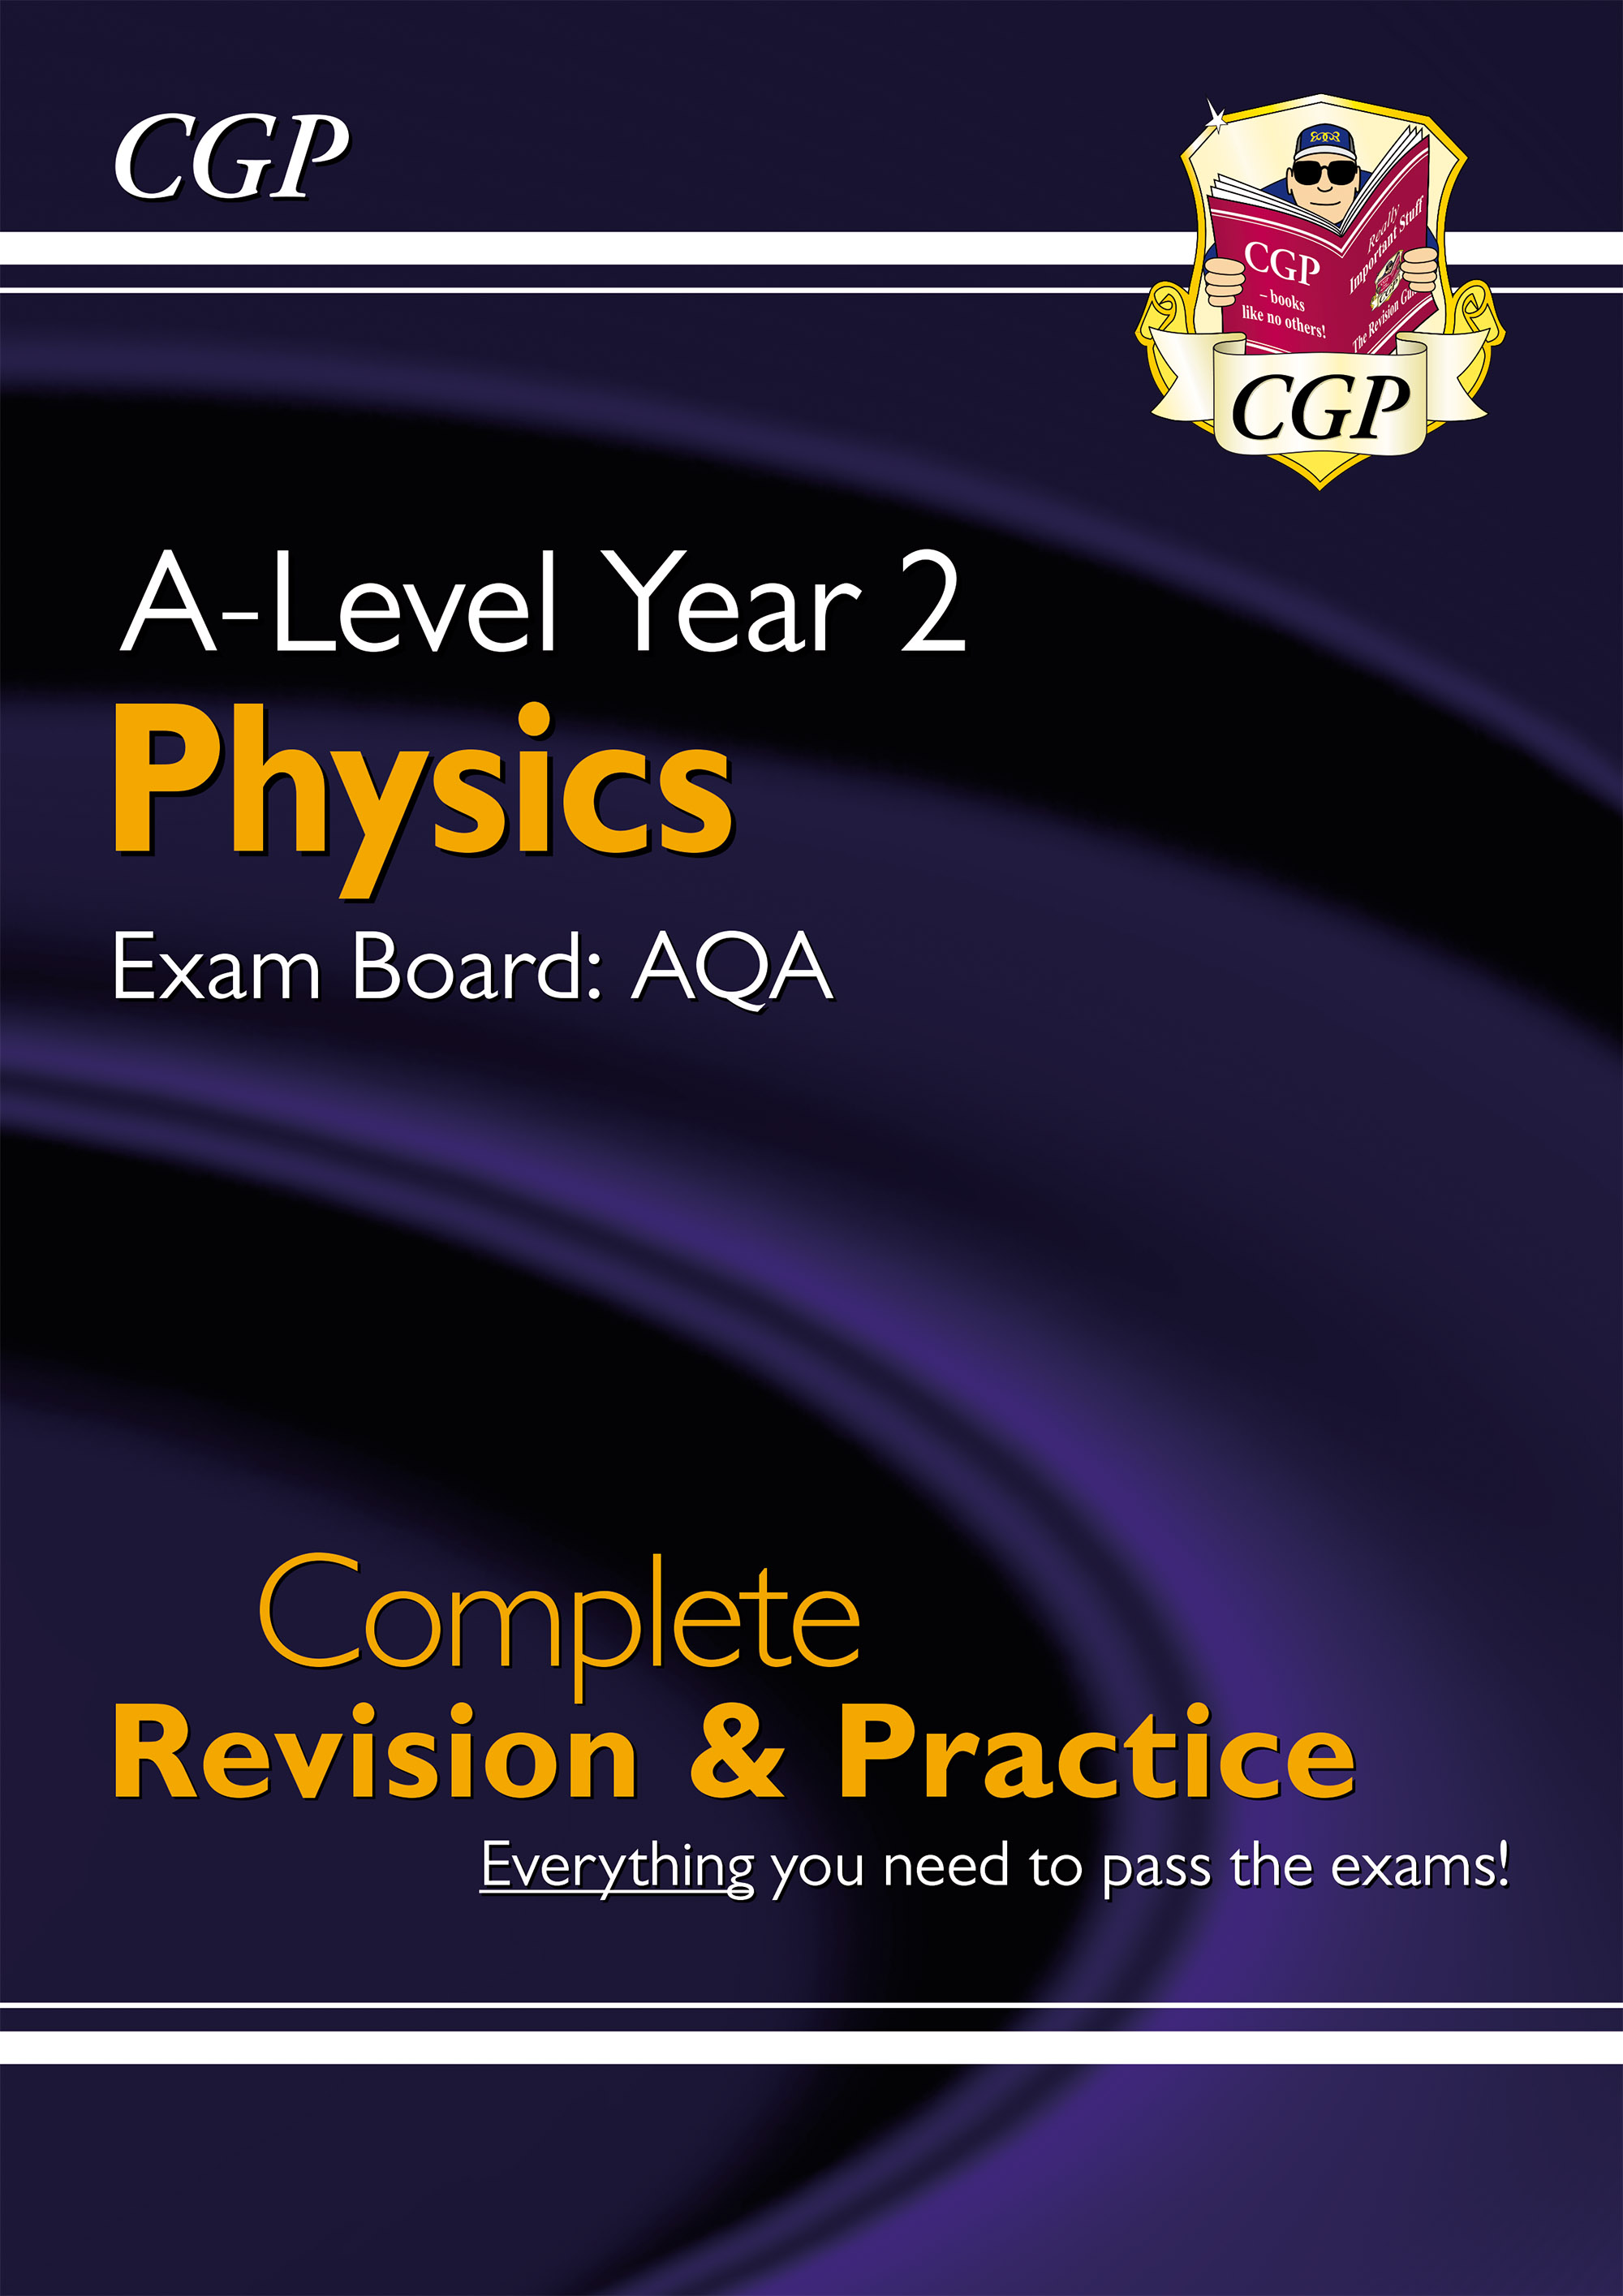 PAR63DK - New A-Level Physics: AQA Year 2 Complete Revision & Practice